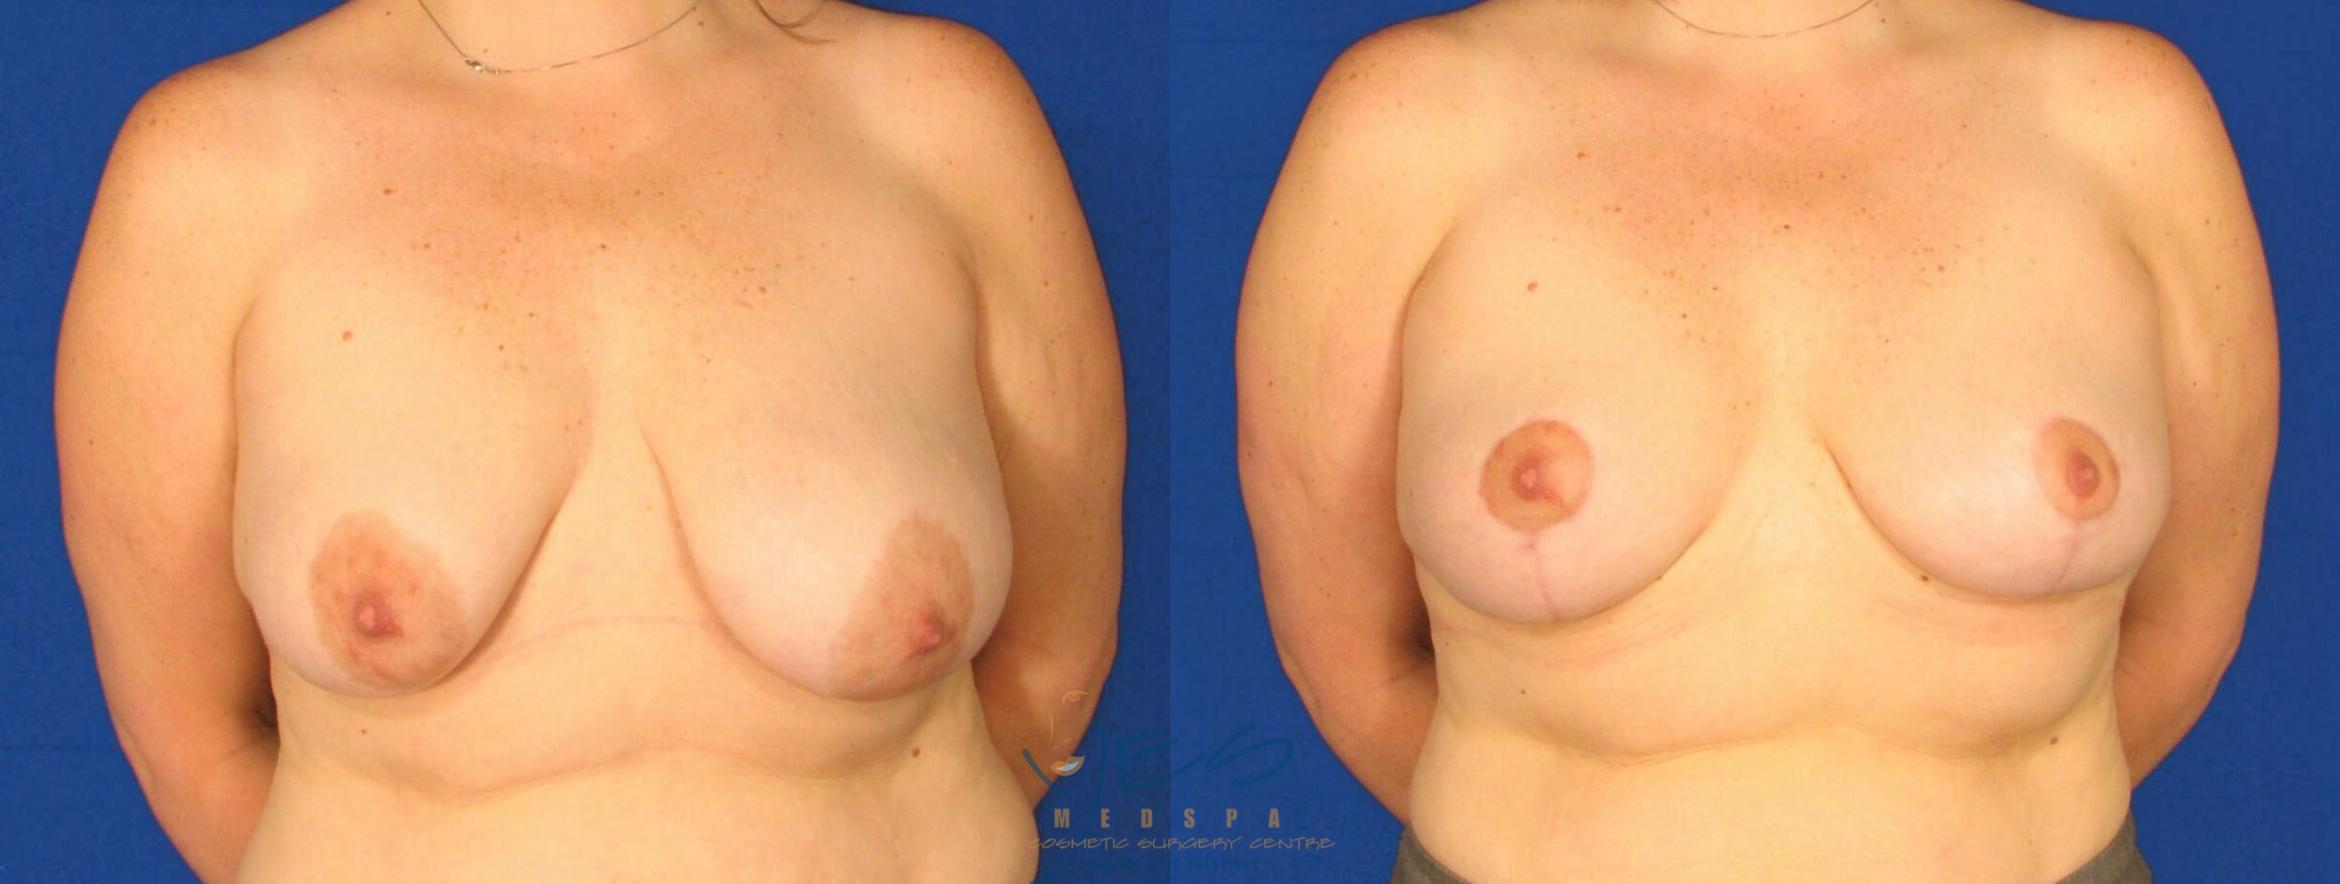 Breast Lift Case 64 Before & After View #1 | Langley, BC | YES Medspa & Cosmetic Surgery Centre